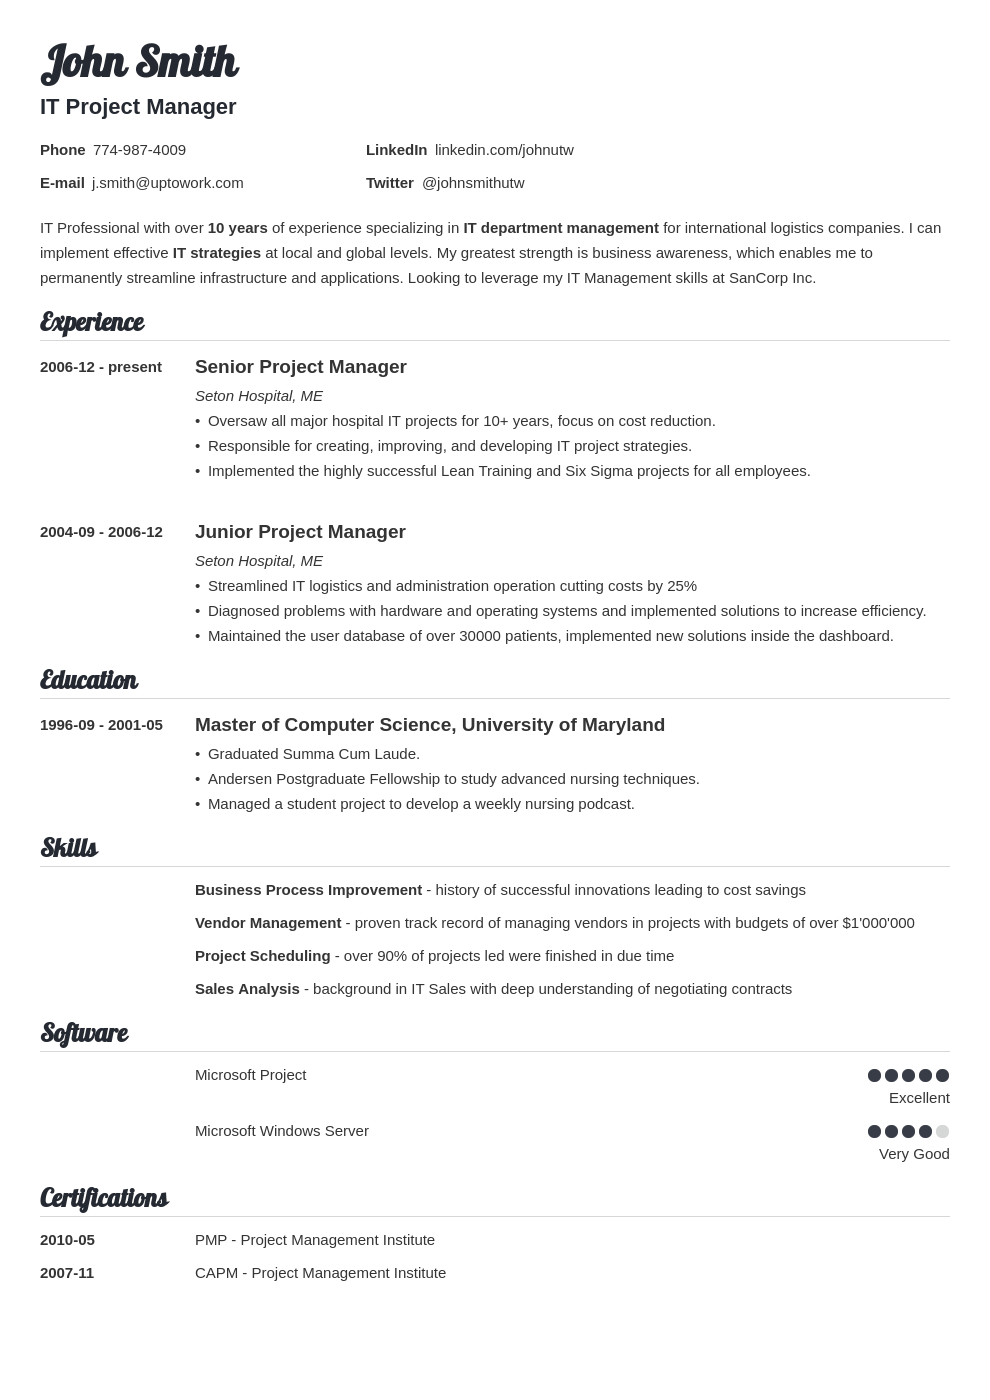 professional resume template valera - Resumen Samples